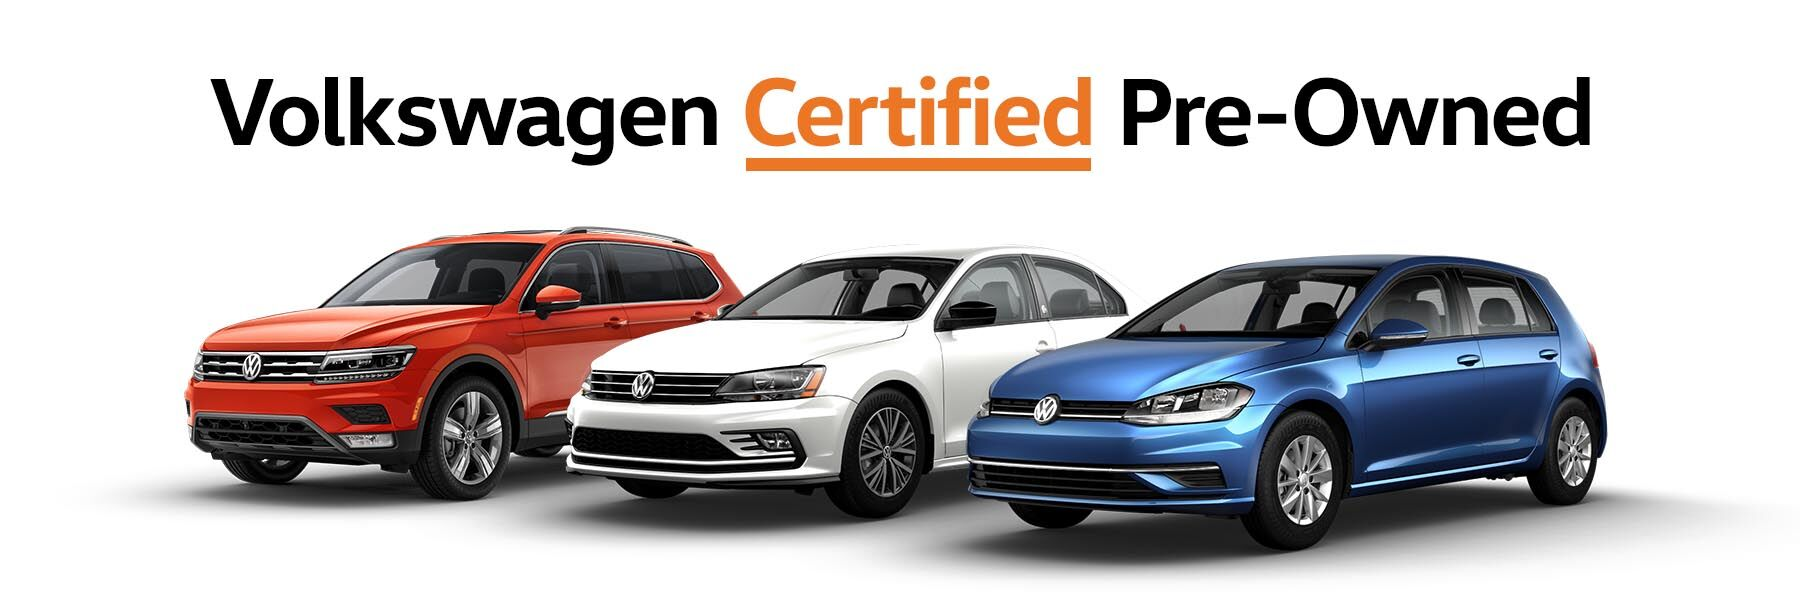 Volkswagen Certified Pre-Owned in Morris County, NJ